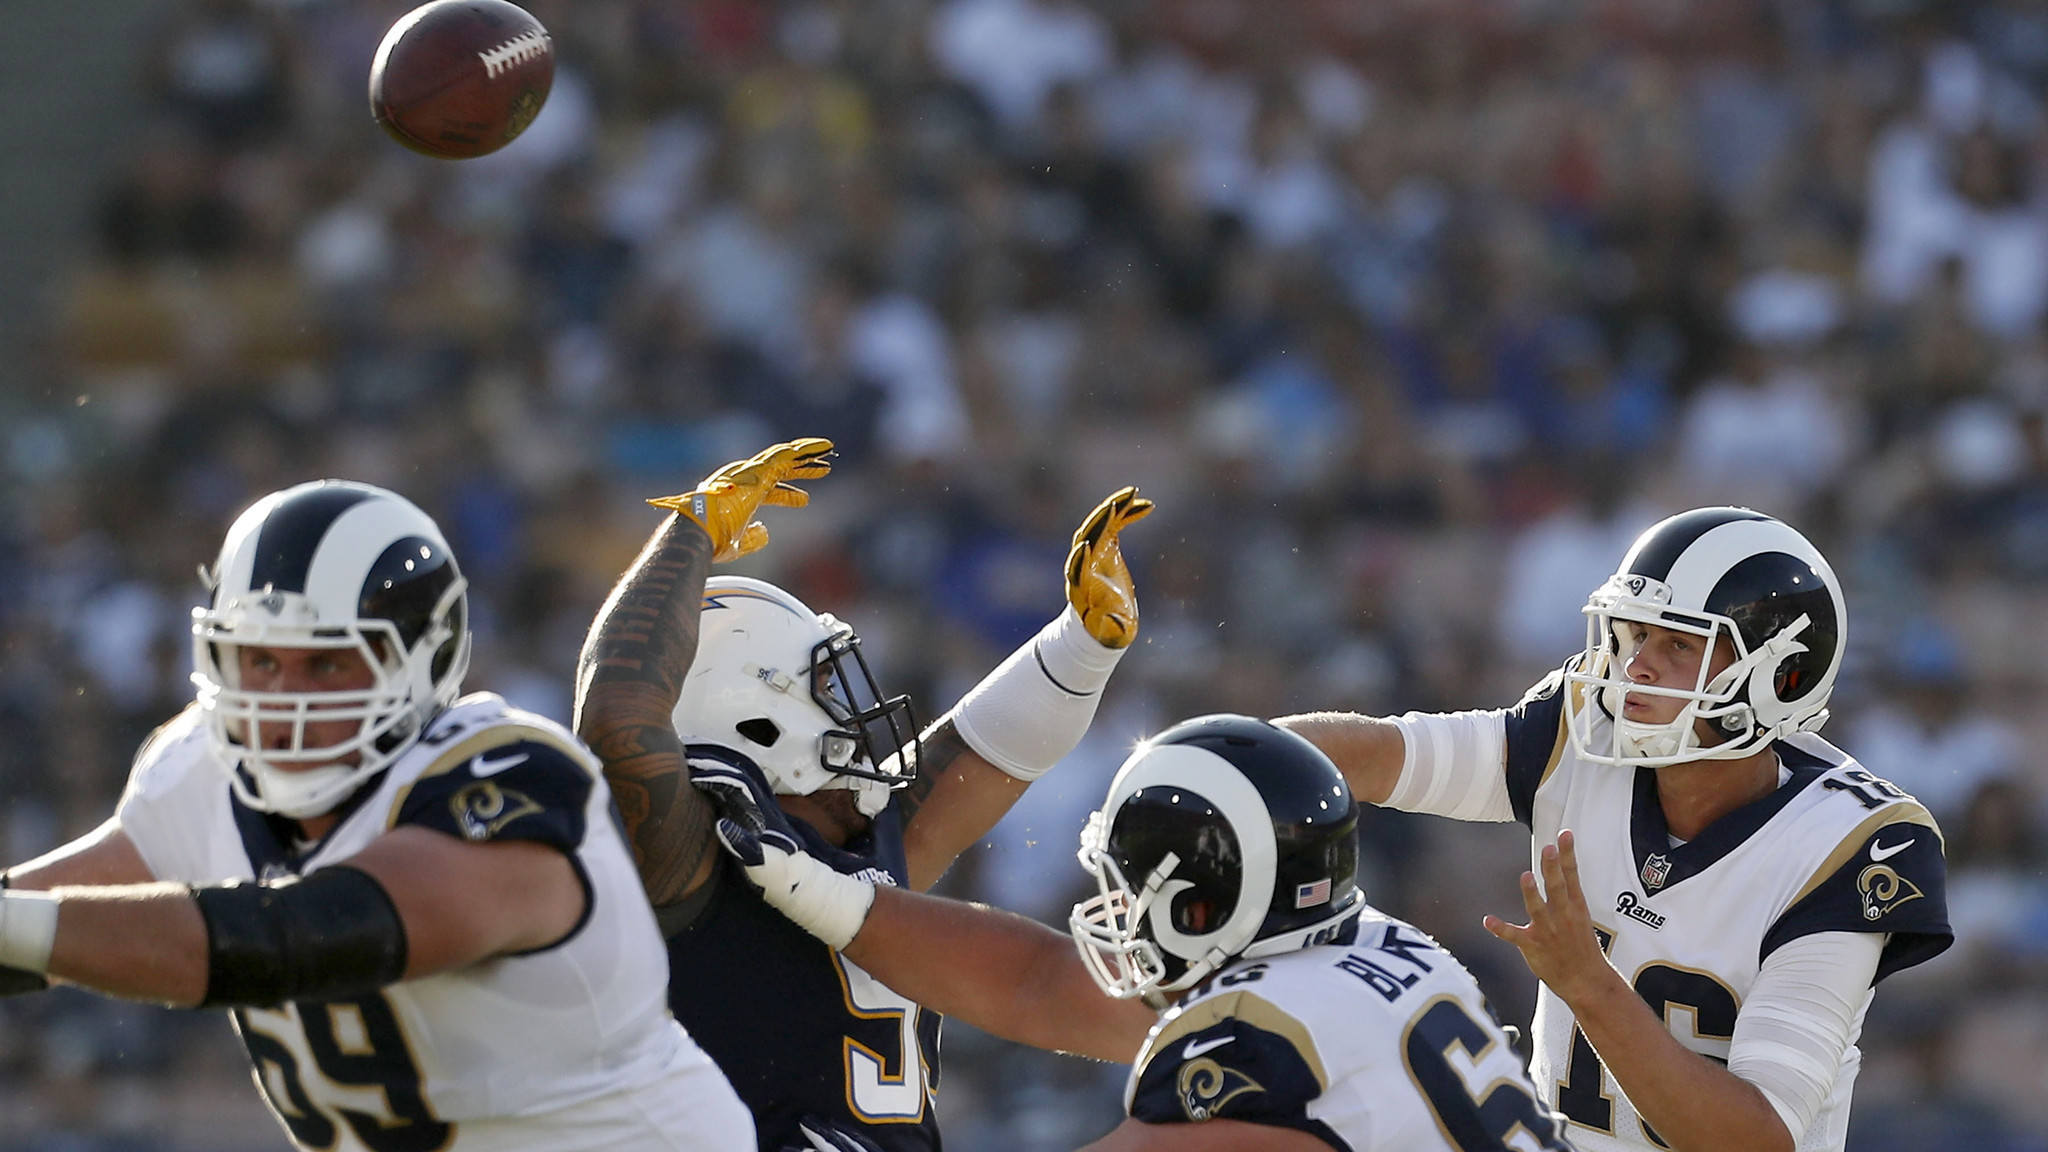 2048x1152 Jared Goff has two turnovers in Rams' exhibition loss to the Chargers - LA  Times